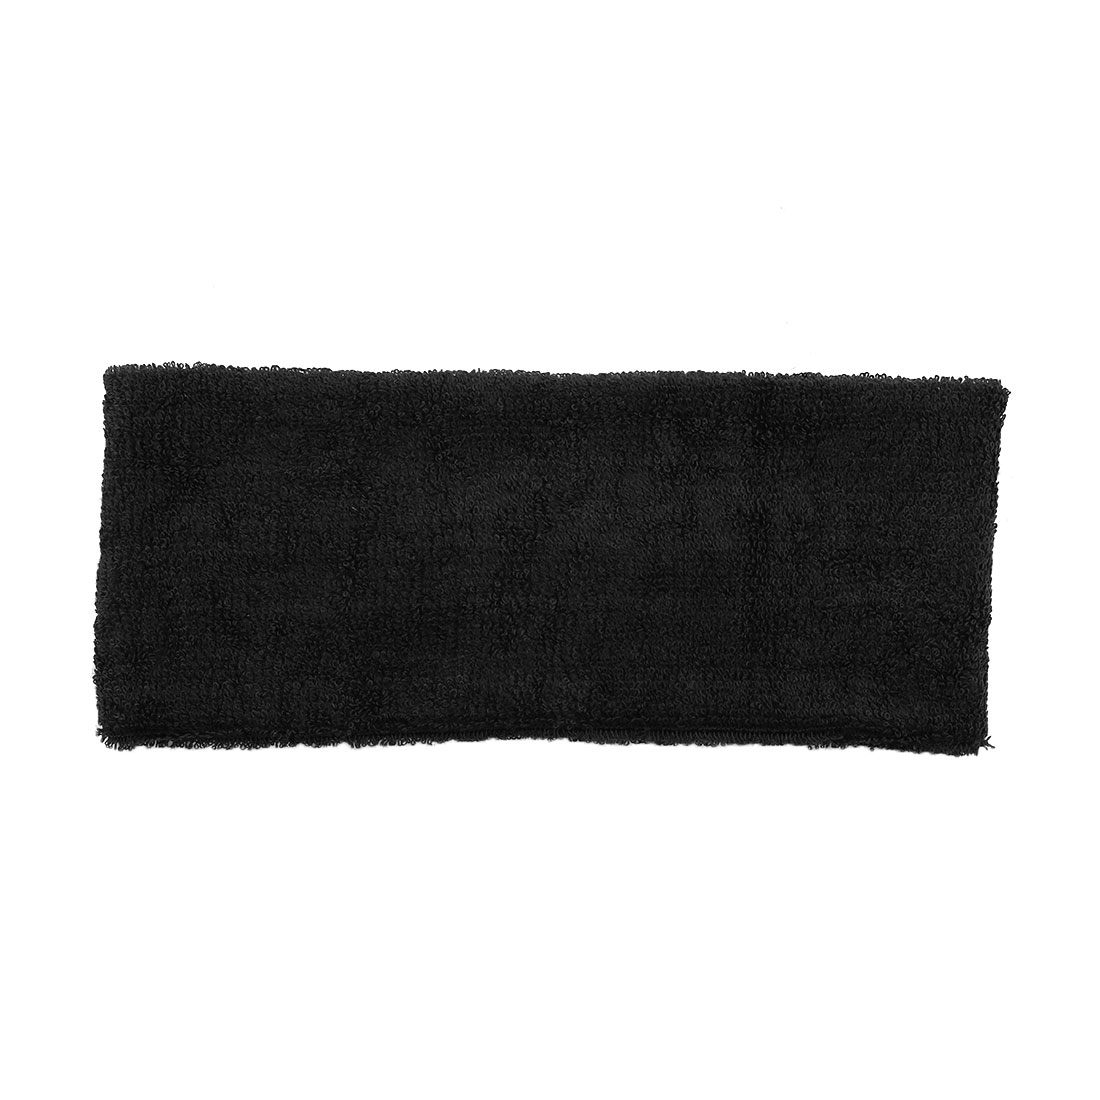 "Basketball Volleyball Stretchy 2.6"" Wide Sweatband Head Band Black"